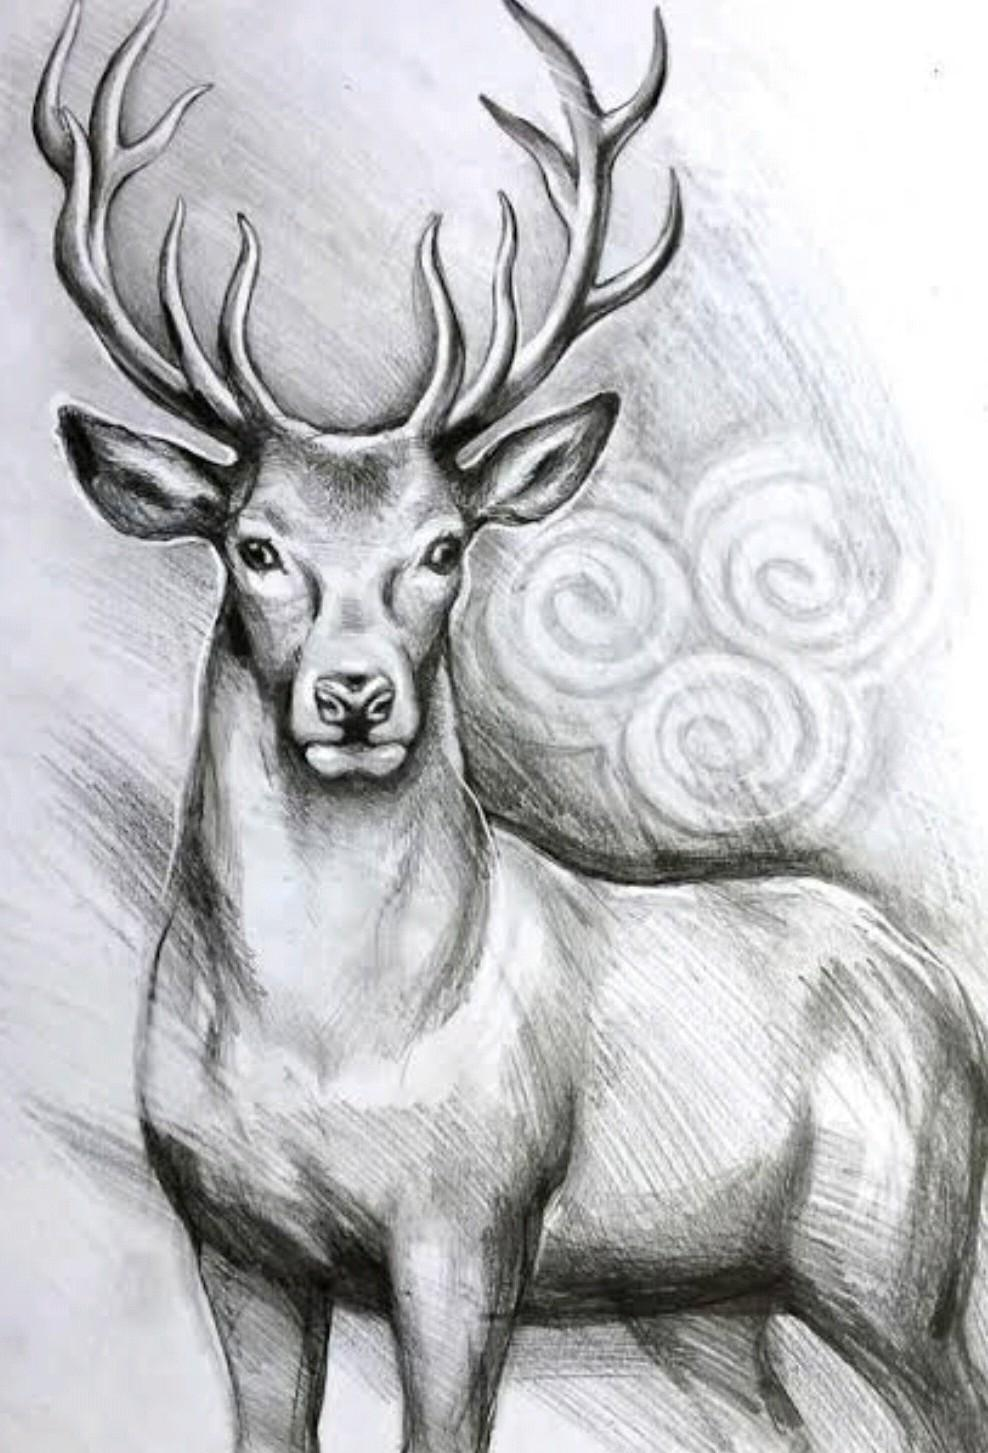 Wild Life Drawing And Pencil Shading Deer Lion And Squirrel Brainly In